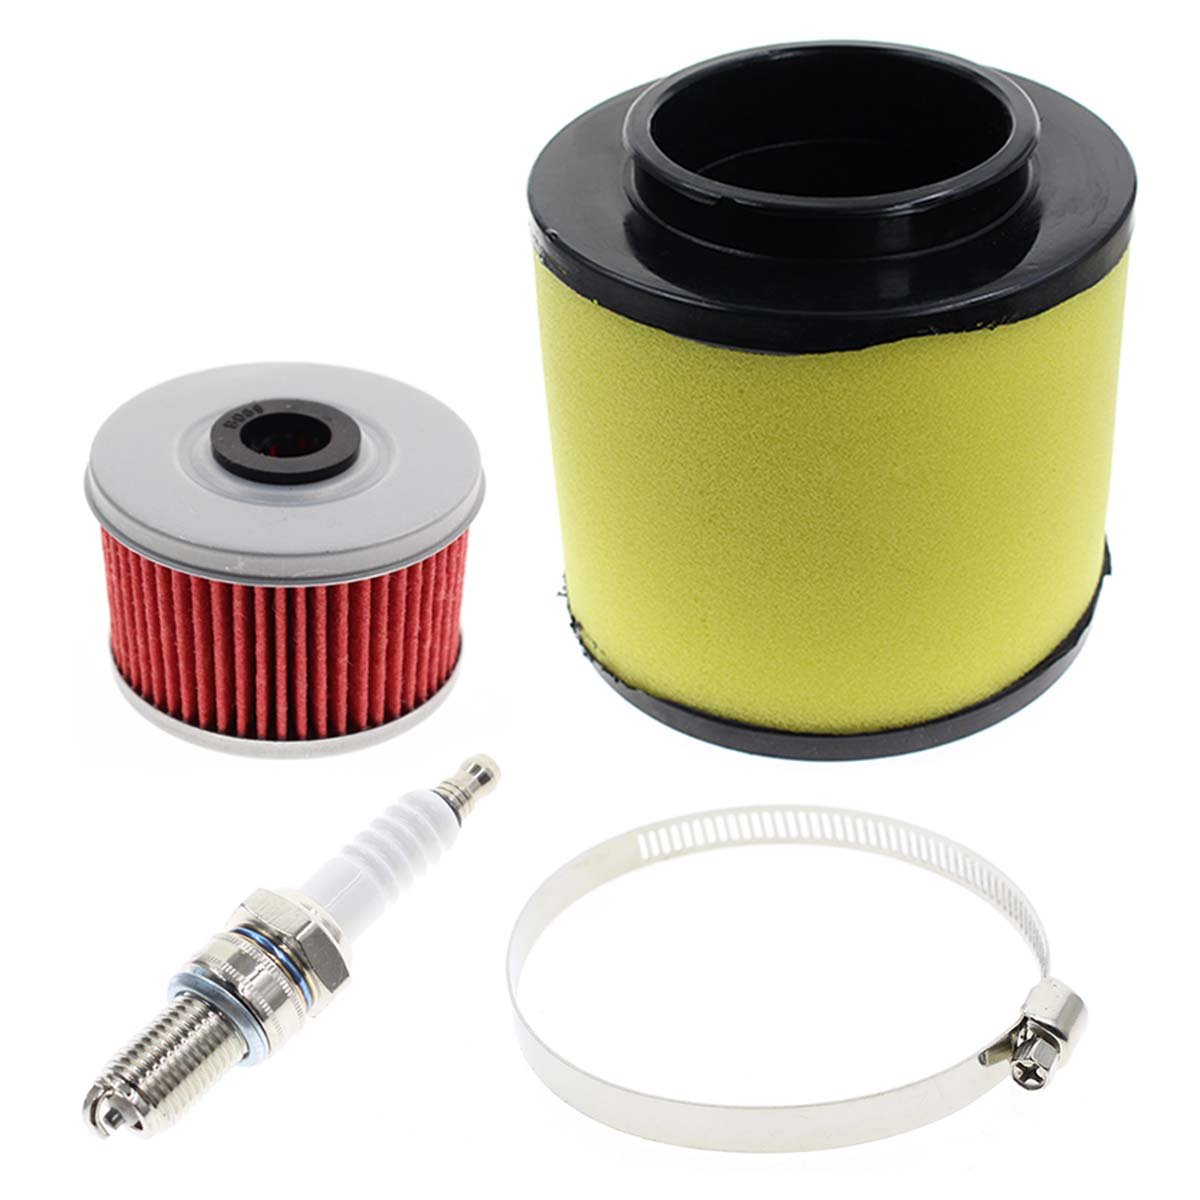 AUTOKAY Air Filter Tune Up Kit for Honda ATV TRX250 TRX250TE Recon TRX250EX TRX250X RECON 250 17254-HM8-000